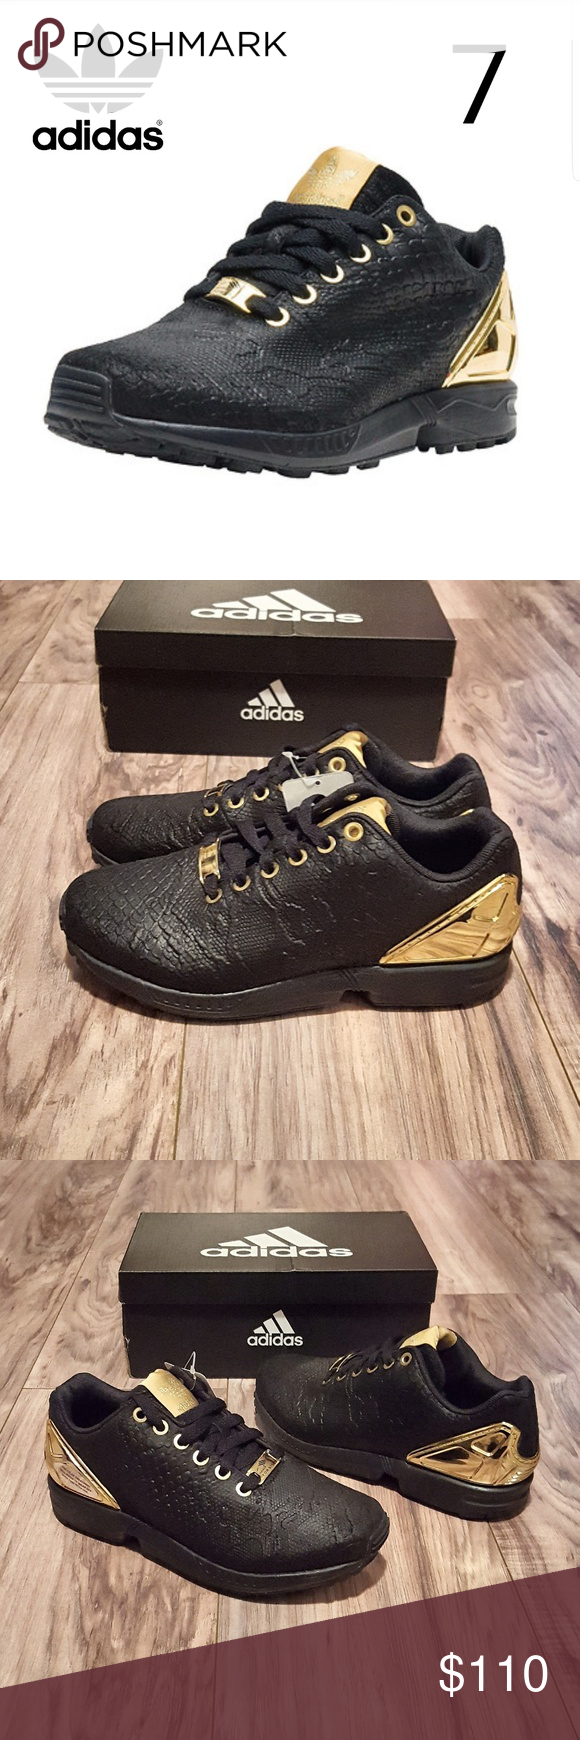 3ae2b196c8c1 Adidas Zx Flux Black Gold Womens 7 BRAND NEW NEVER USED!!!💯🆕 Adidas  Originals Zx Flux Women s Size 7 (5Y) Graphic Print - Black Gold 🚚 SHIPS  IN DOUBLE ...